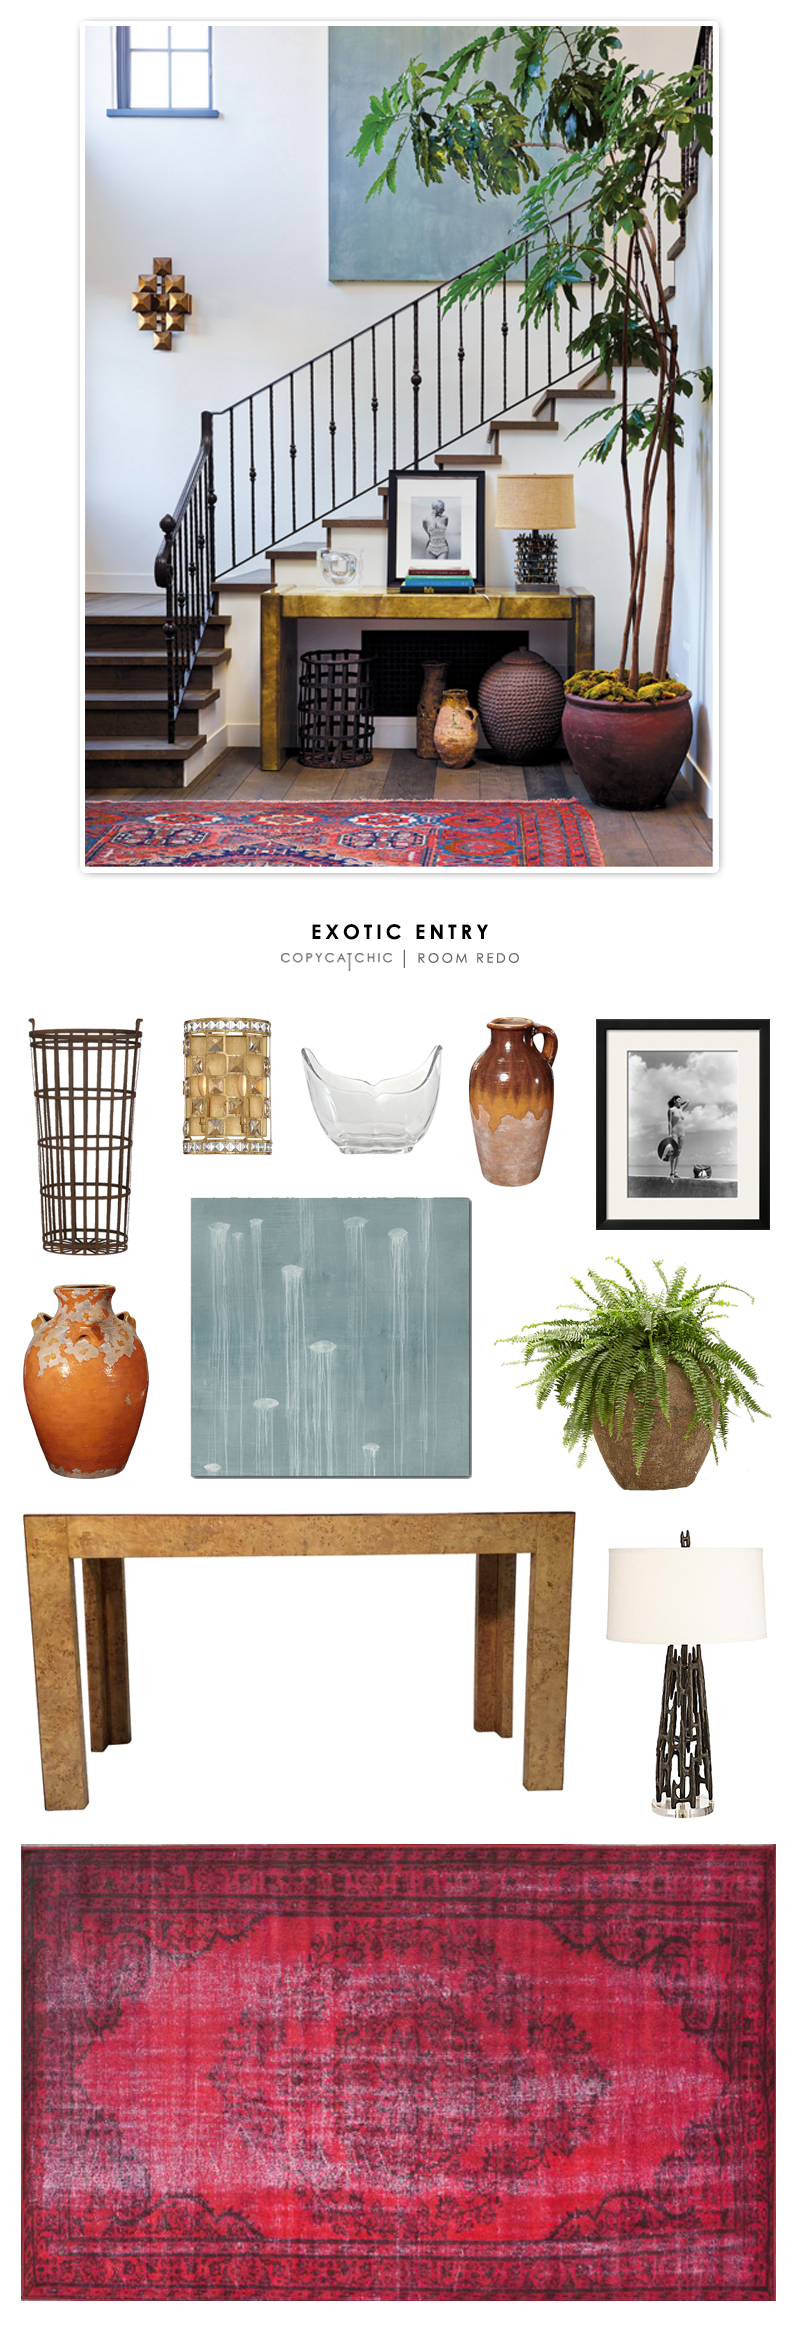 An eclectic, exotic entryway designed by Vanessa Alexander and recreated for less by Copy Cat Chic